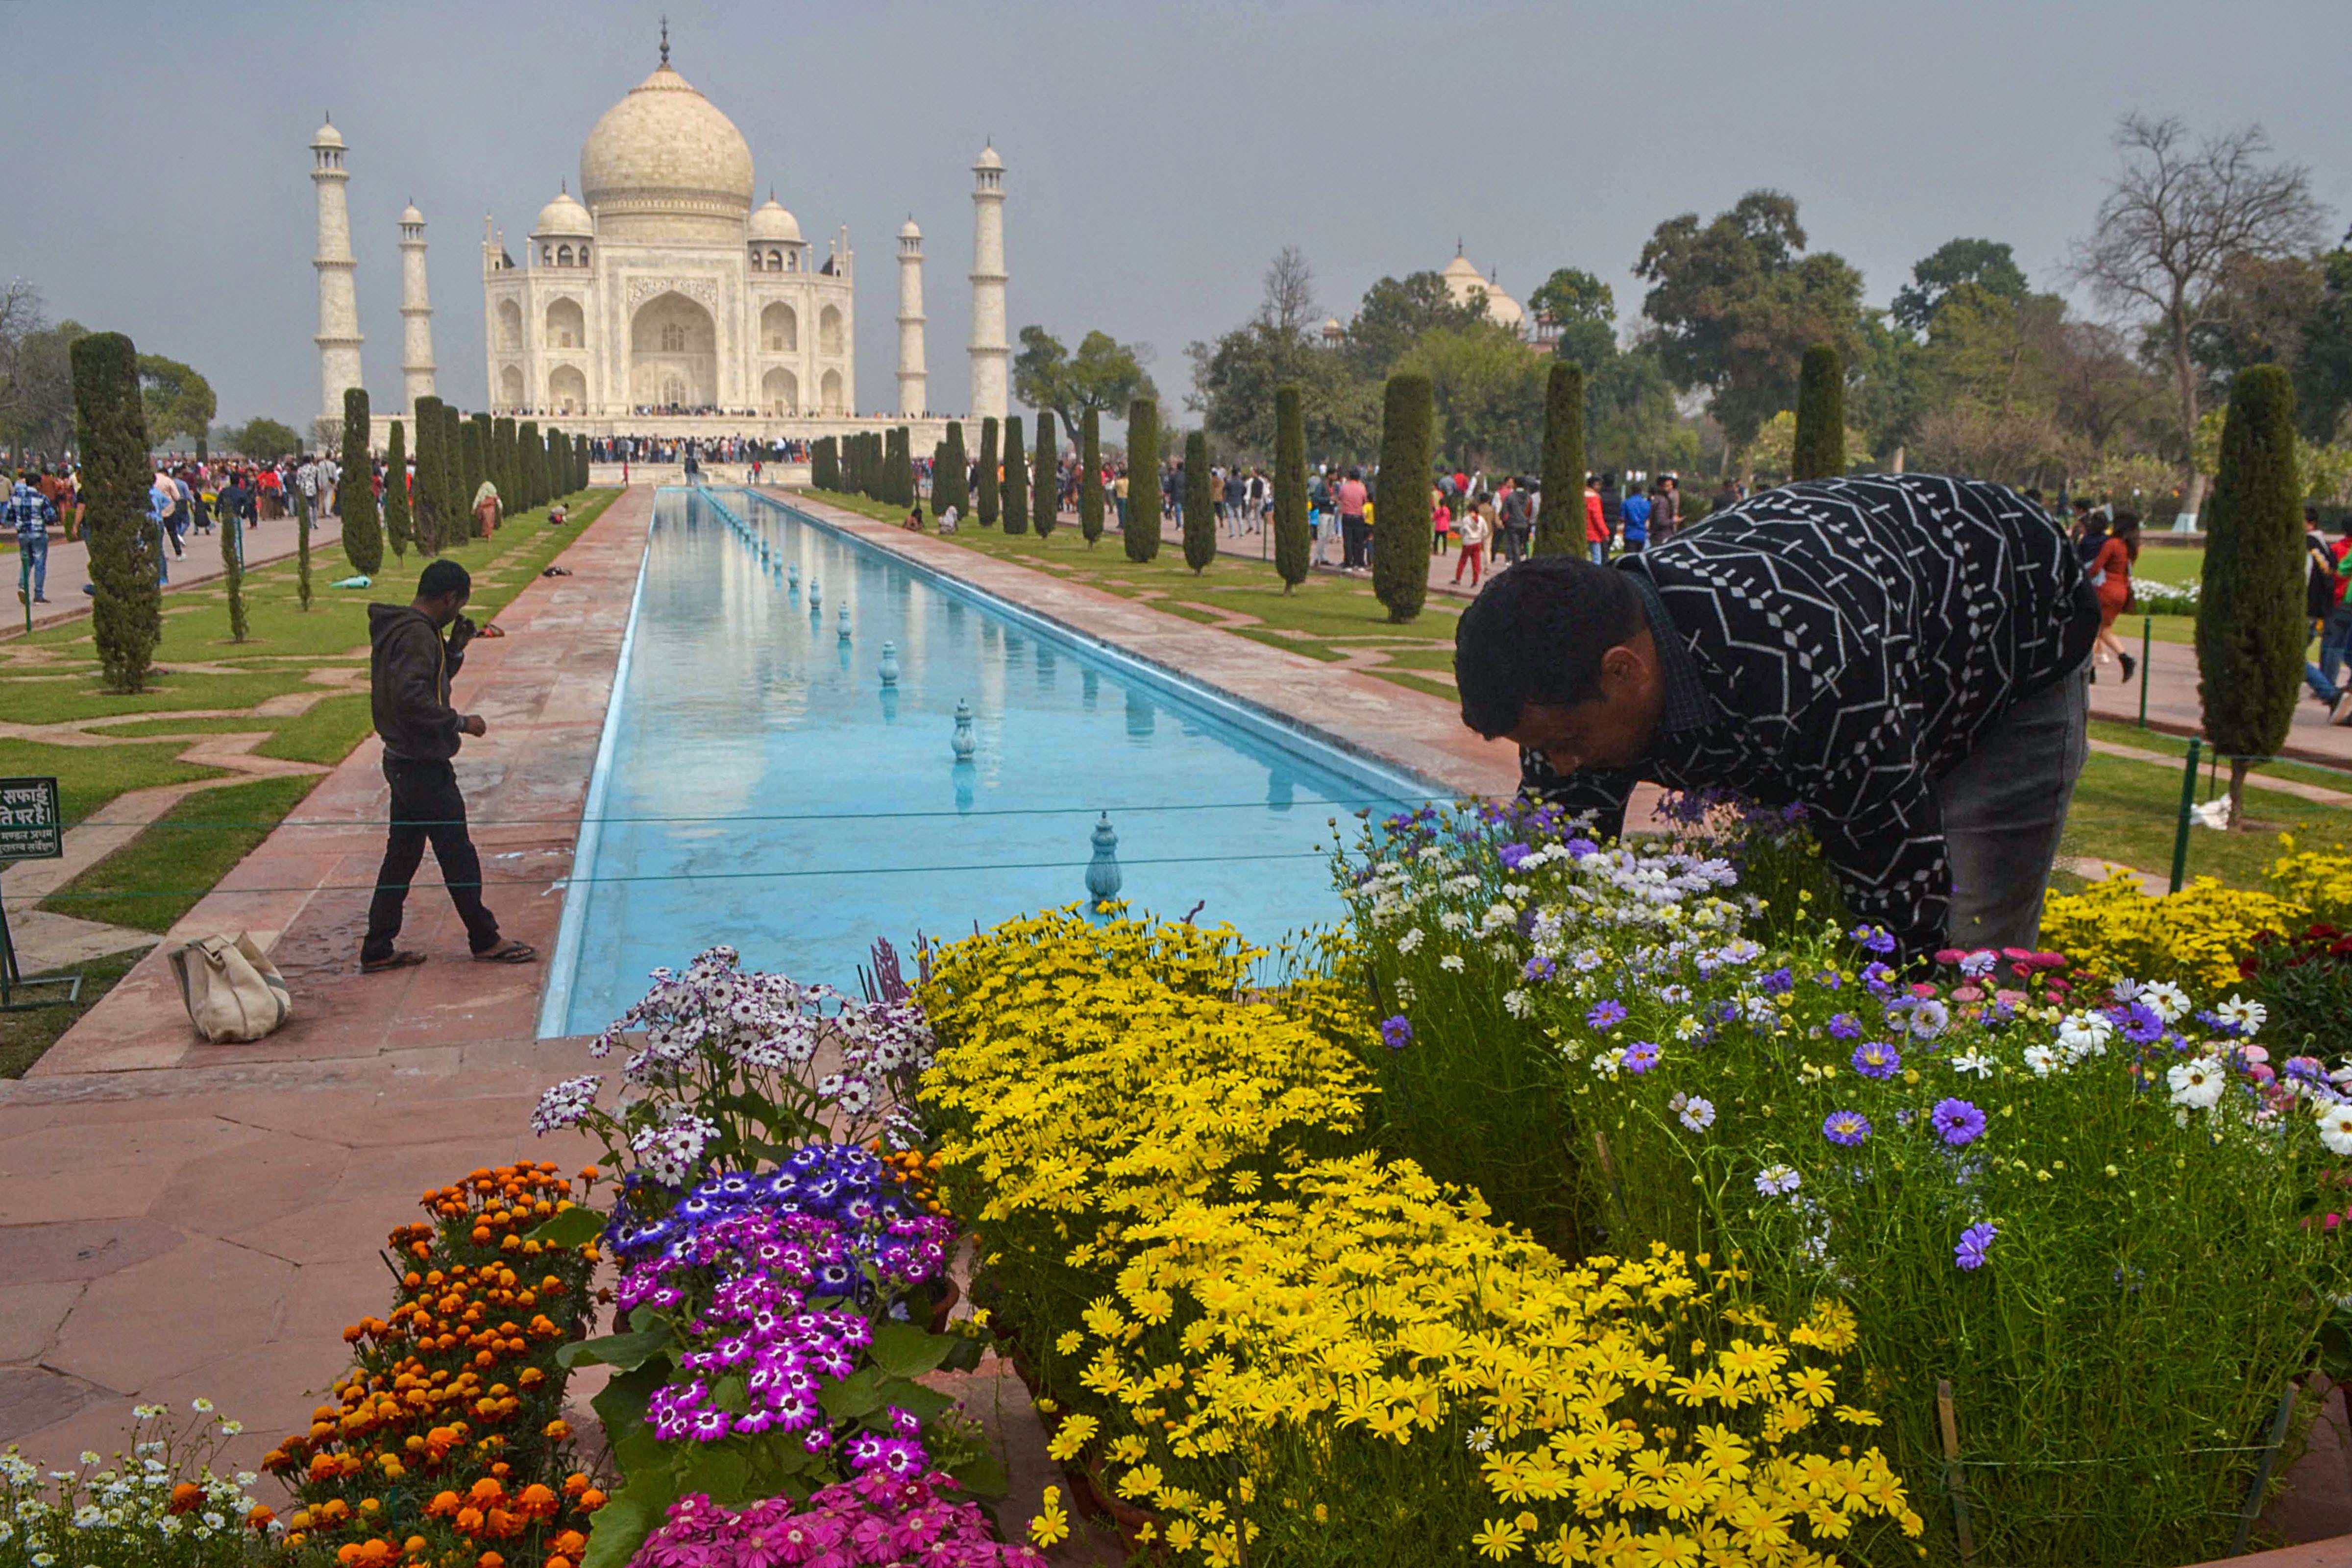 A worker arranges flower pots at the Taj Mahal ahead of US President Donald Trump's maiden visit to India, in Agra, Saturday, February 22, 2020